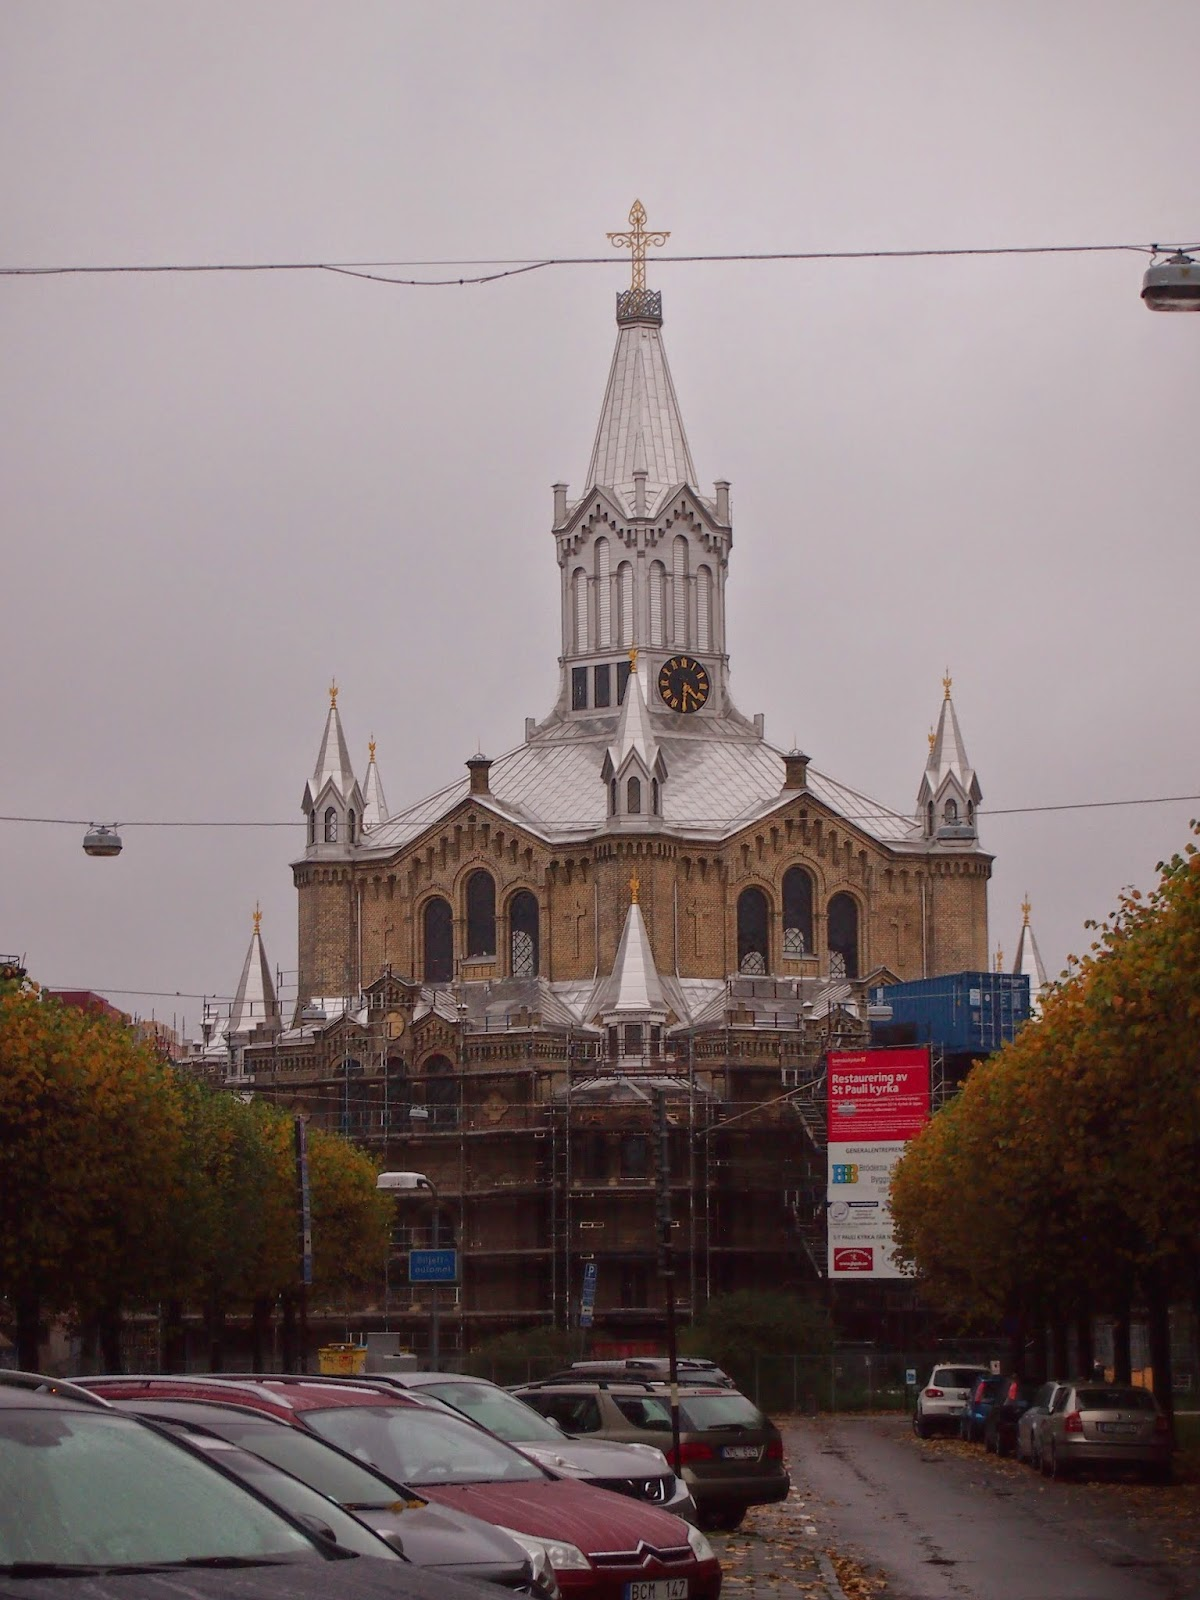 The silver dome of st. paul's church blending into a grey sky